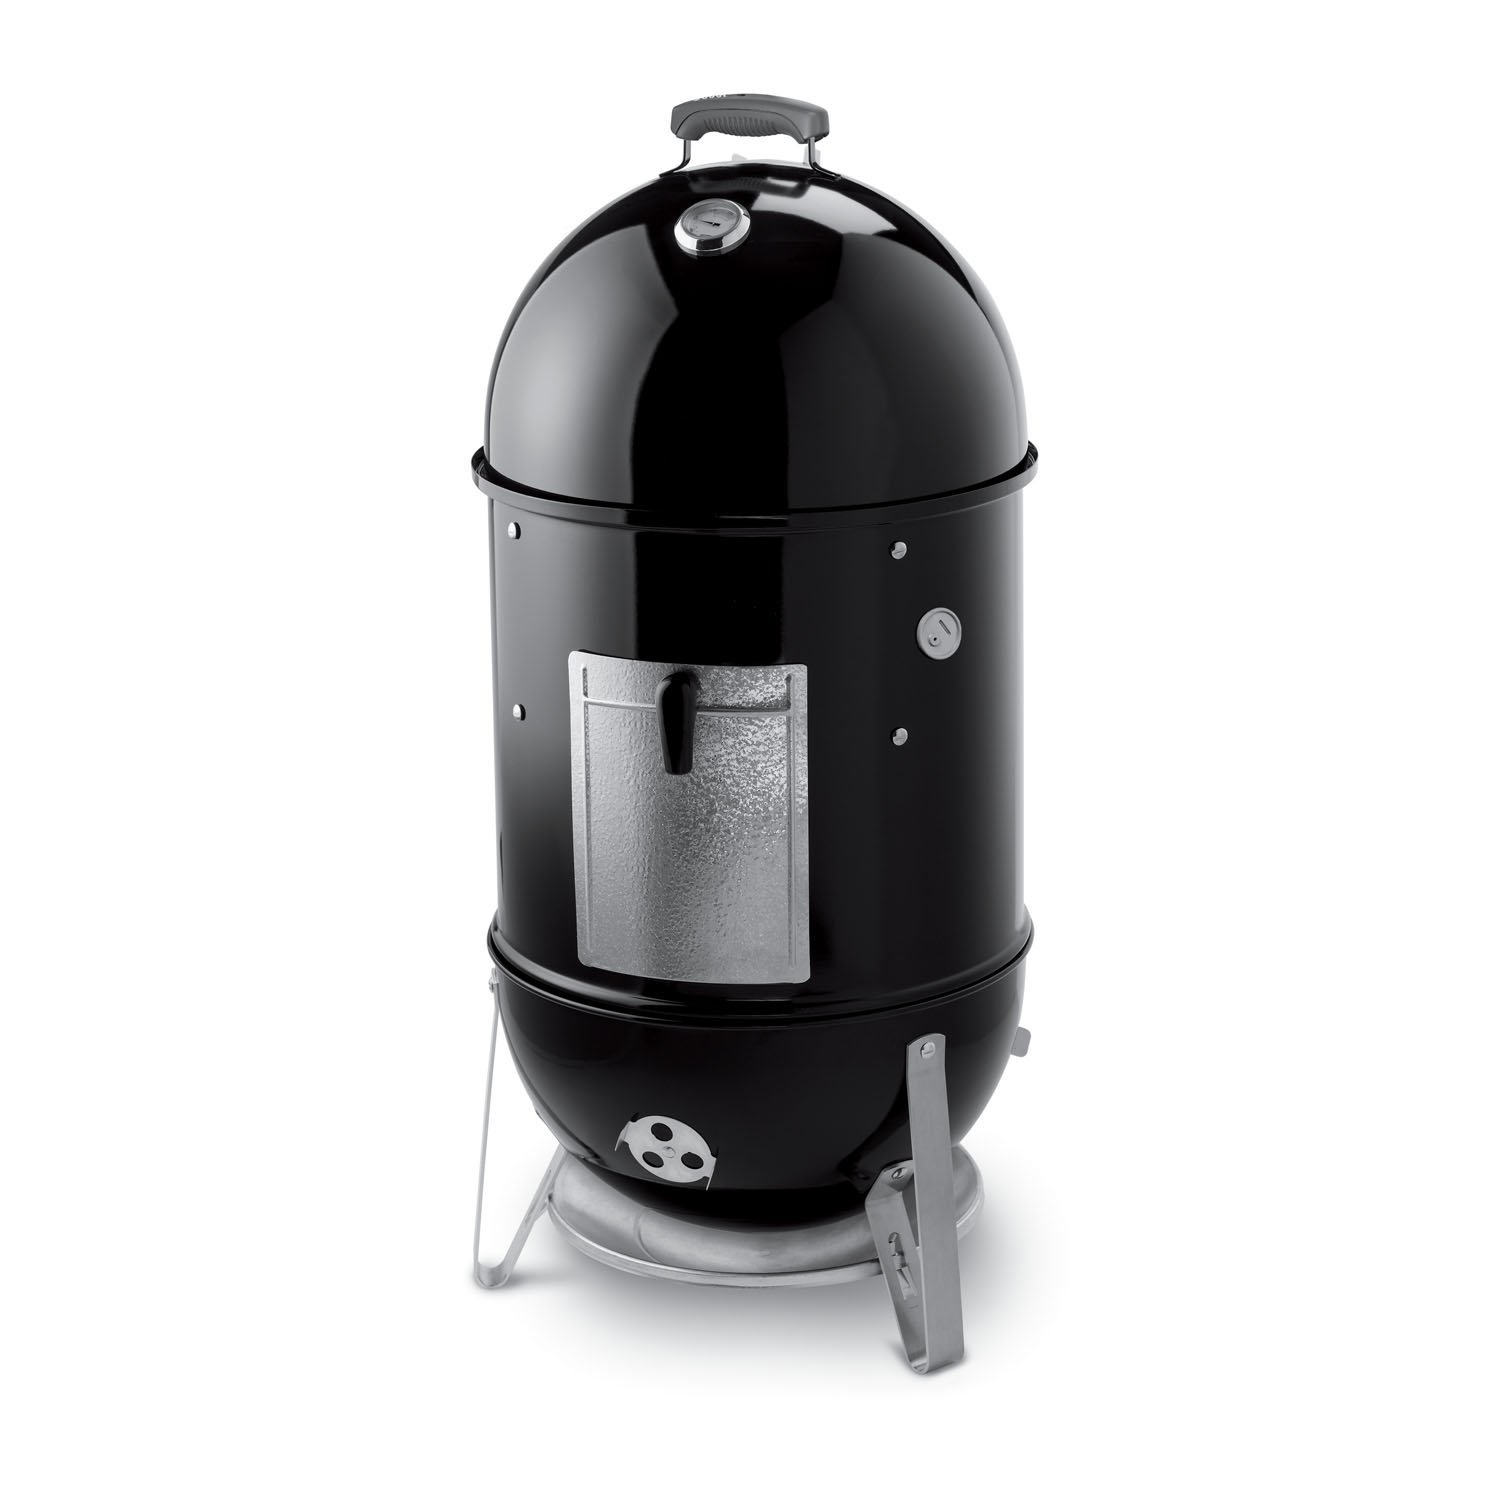 Weber Smokey Mountain Vented BBQ Smoker Grill - Good for Charcoal or Woodchips,  3 Size Options